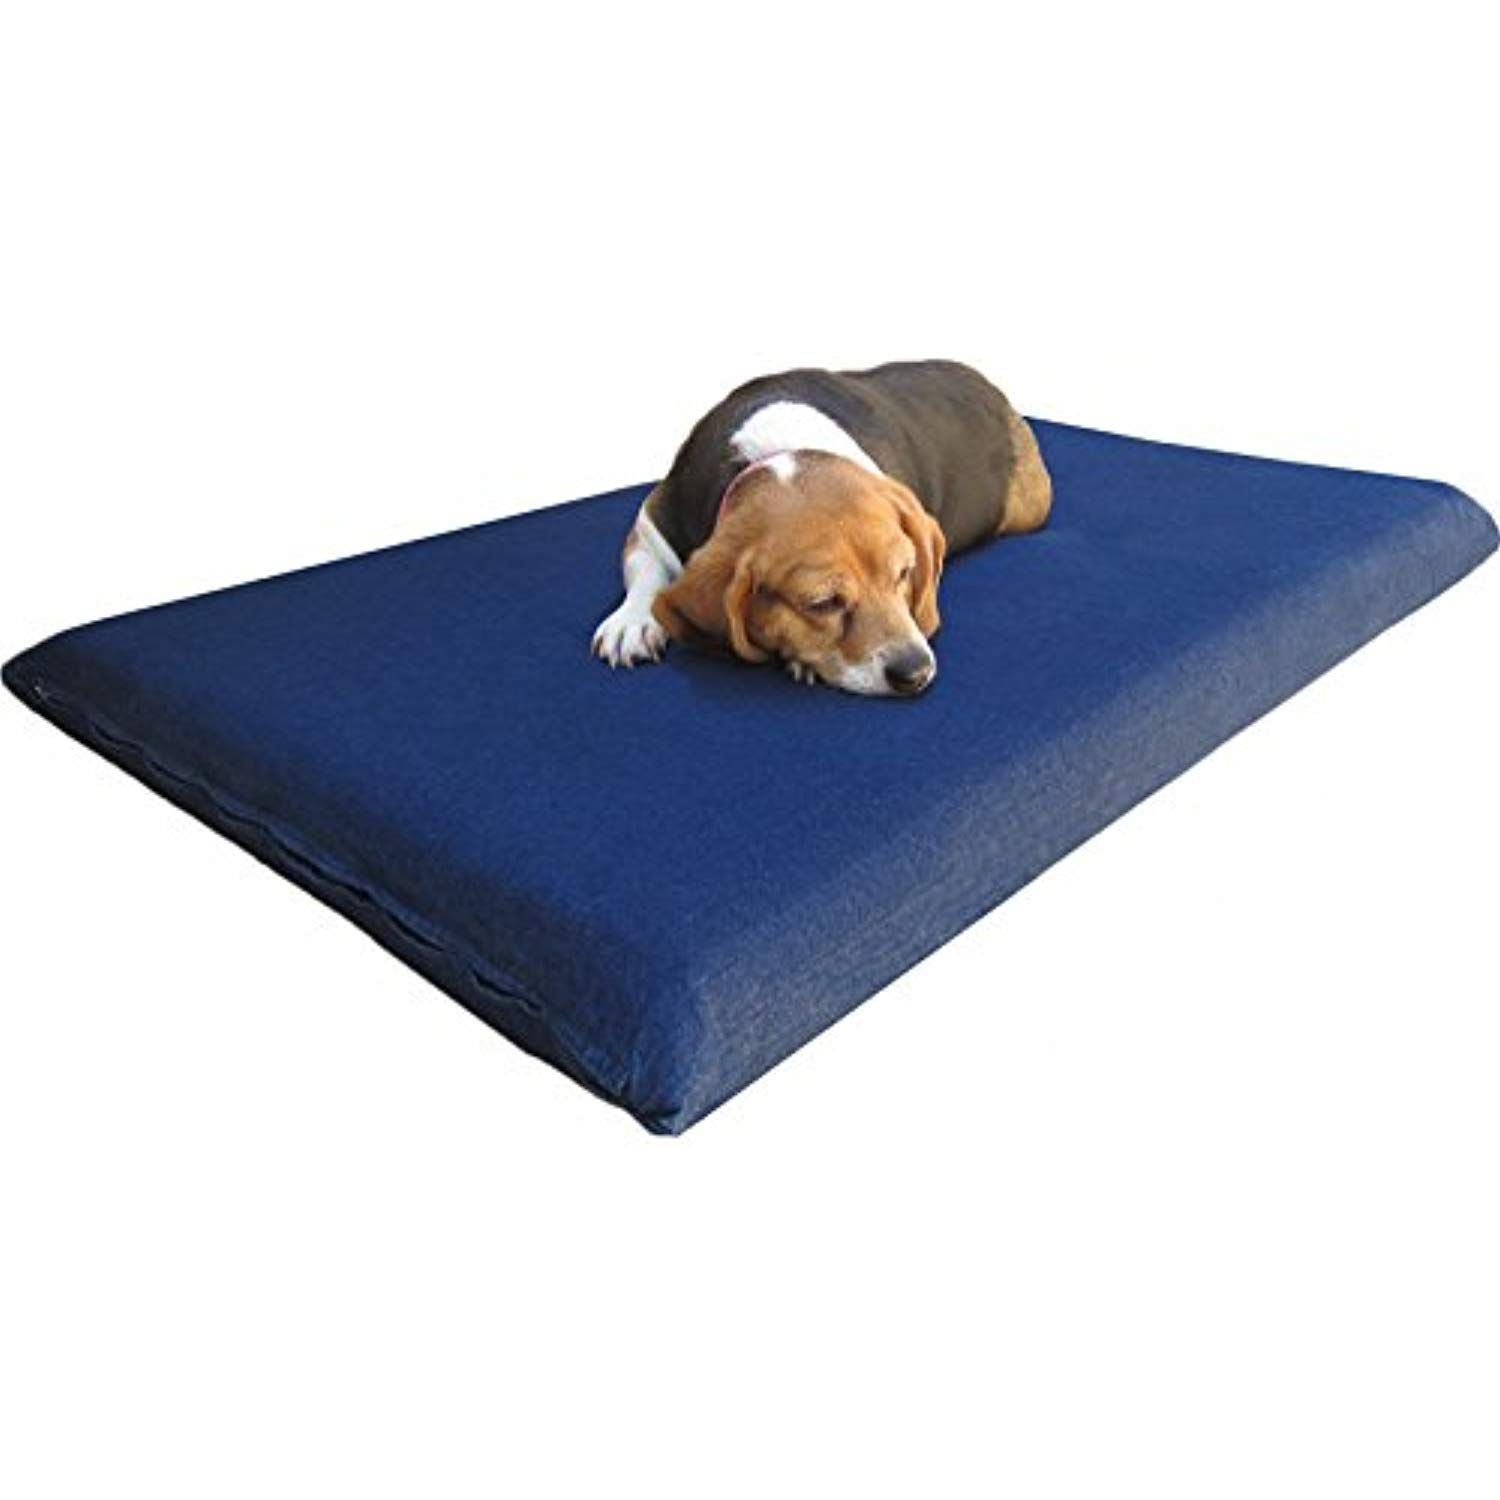 Dogbed4less Gel Cooling Memory Foam Dog Bed For Medium Large Pet